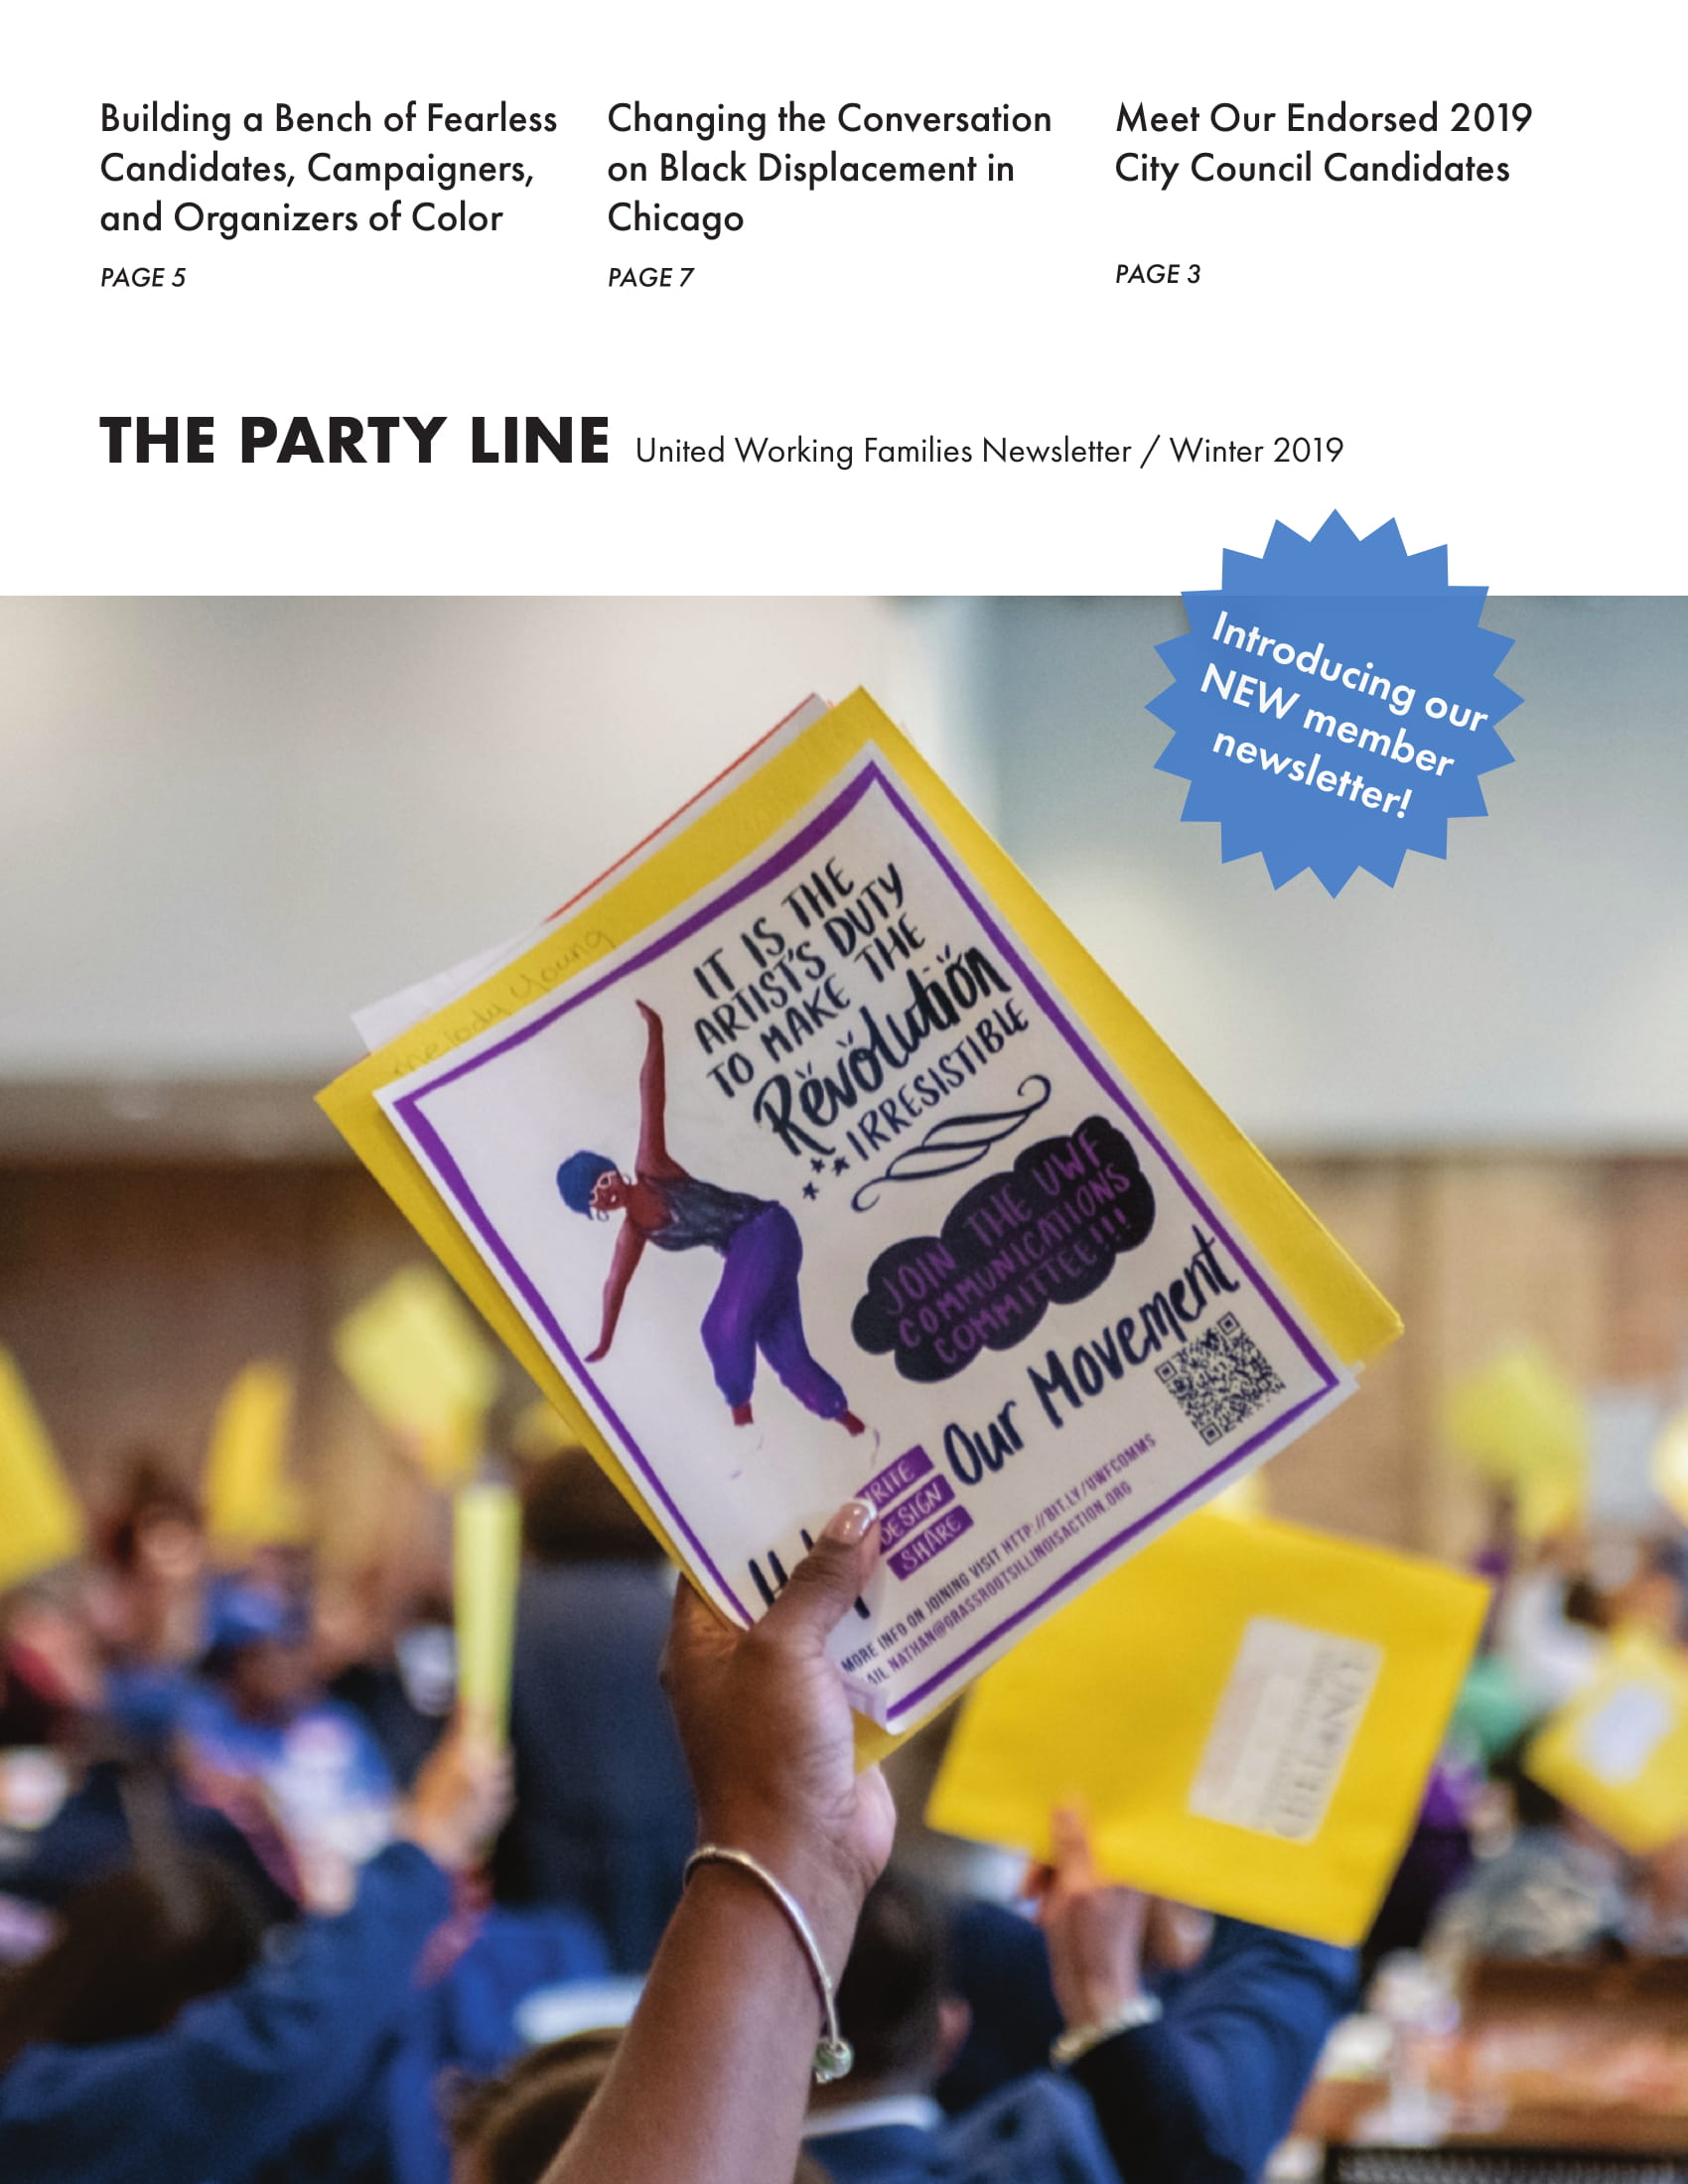 MEMBER NEWSLETTERS ARE HERE! - Download the Winter 2018 issueDownload the Summer 2019 issueJoin today to receive your next issue in the mail!